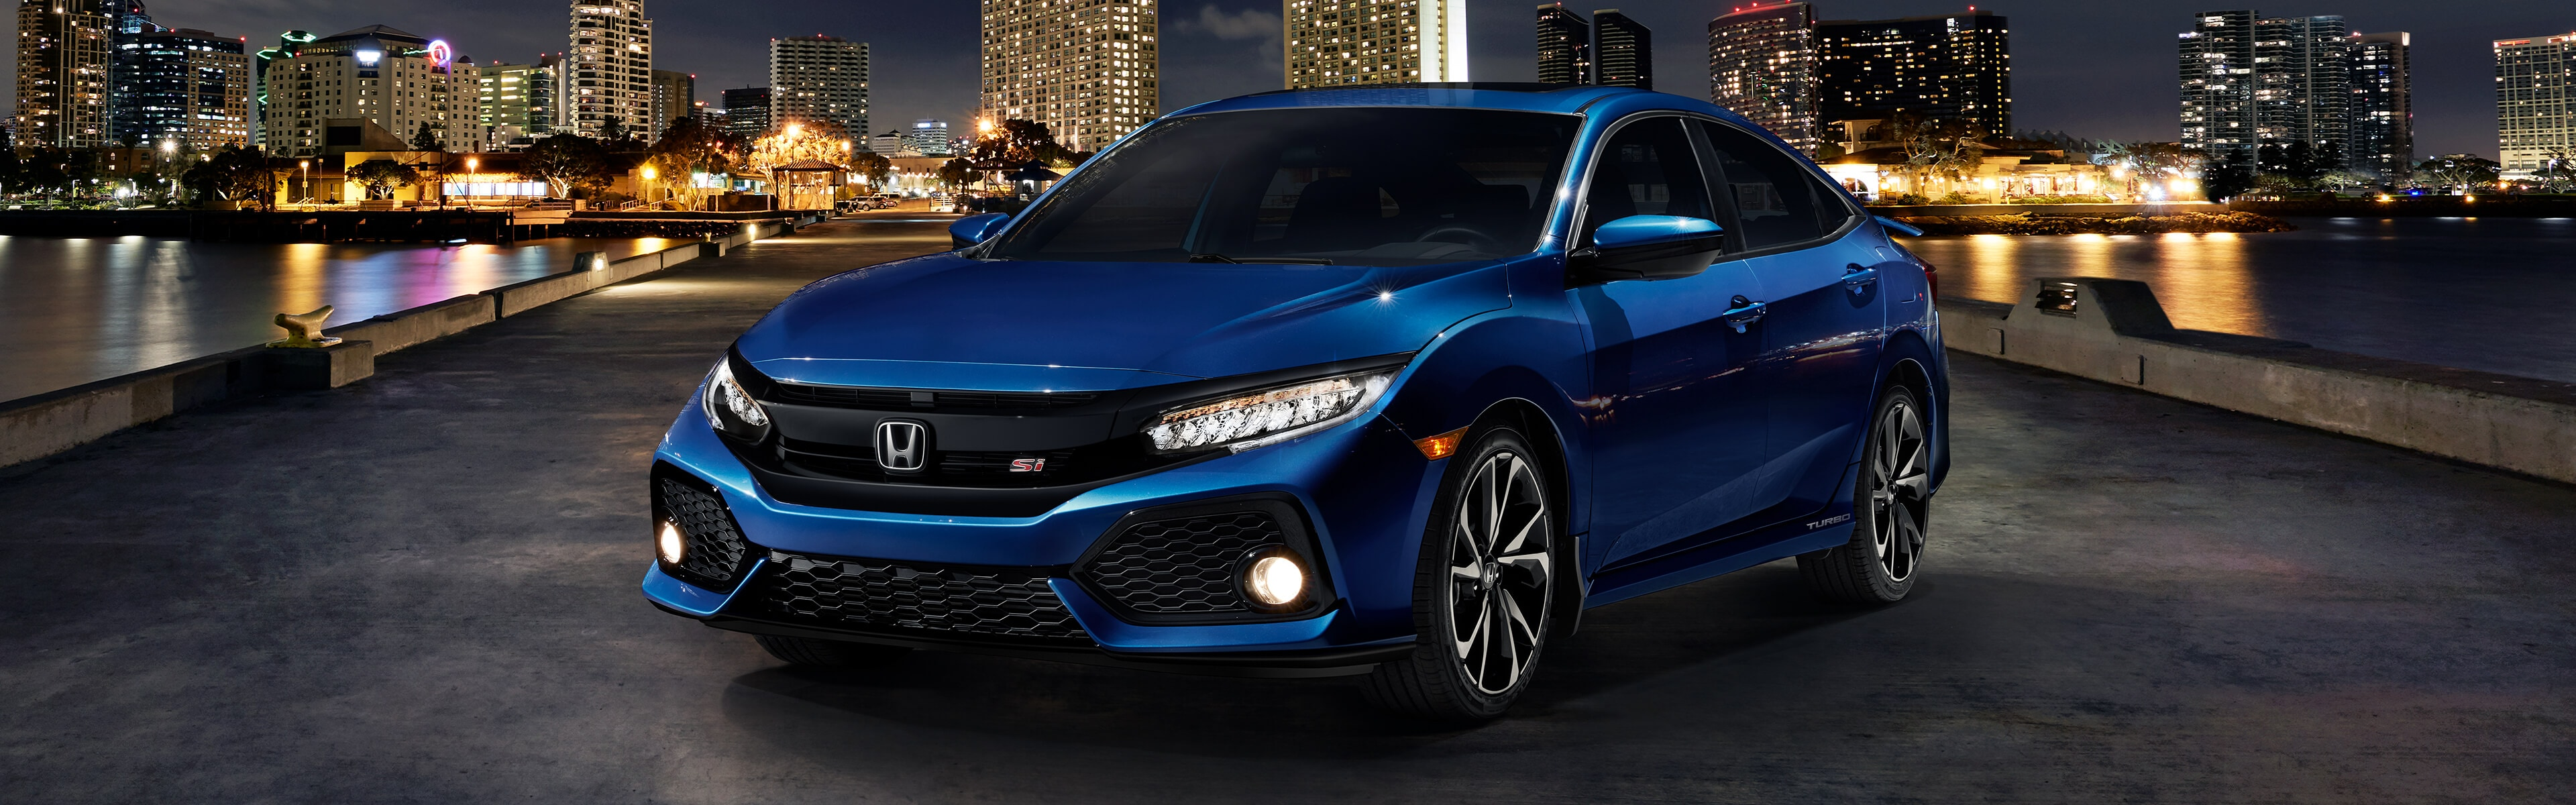 2018 Honda Civic Toronto